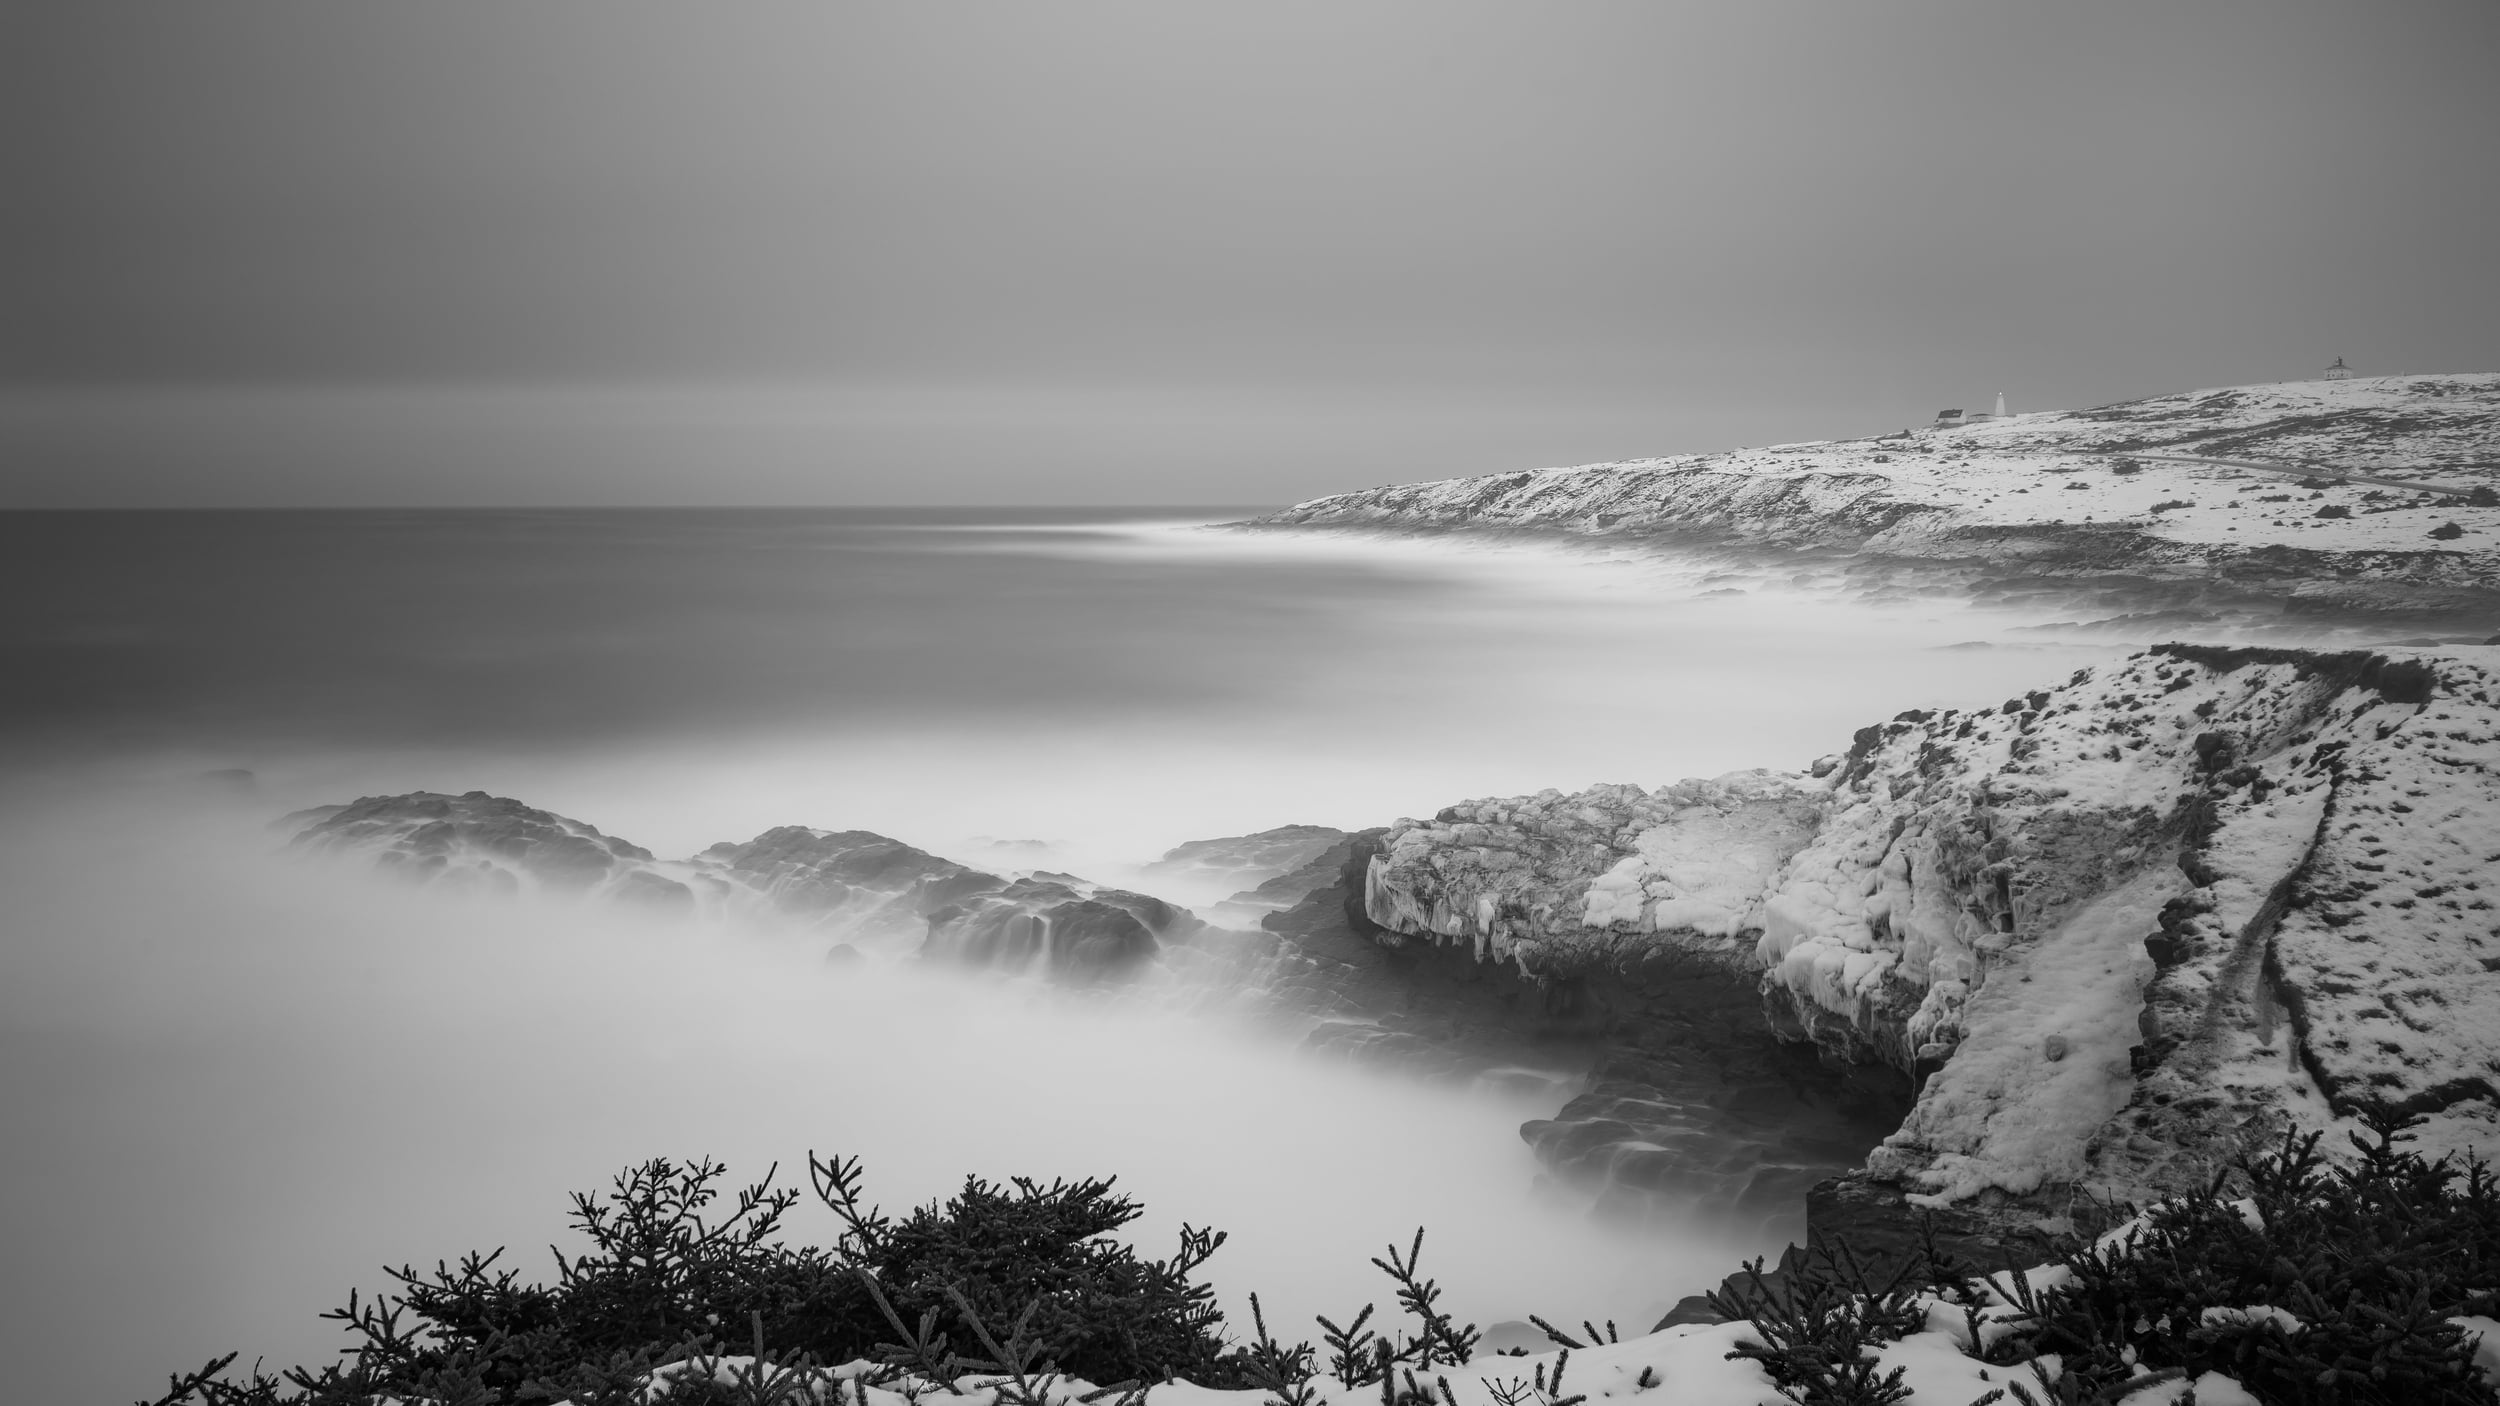 This is a three-minute exposure calming the otherwise violent waves. Time fixes everything.